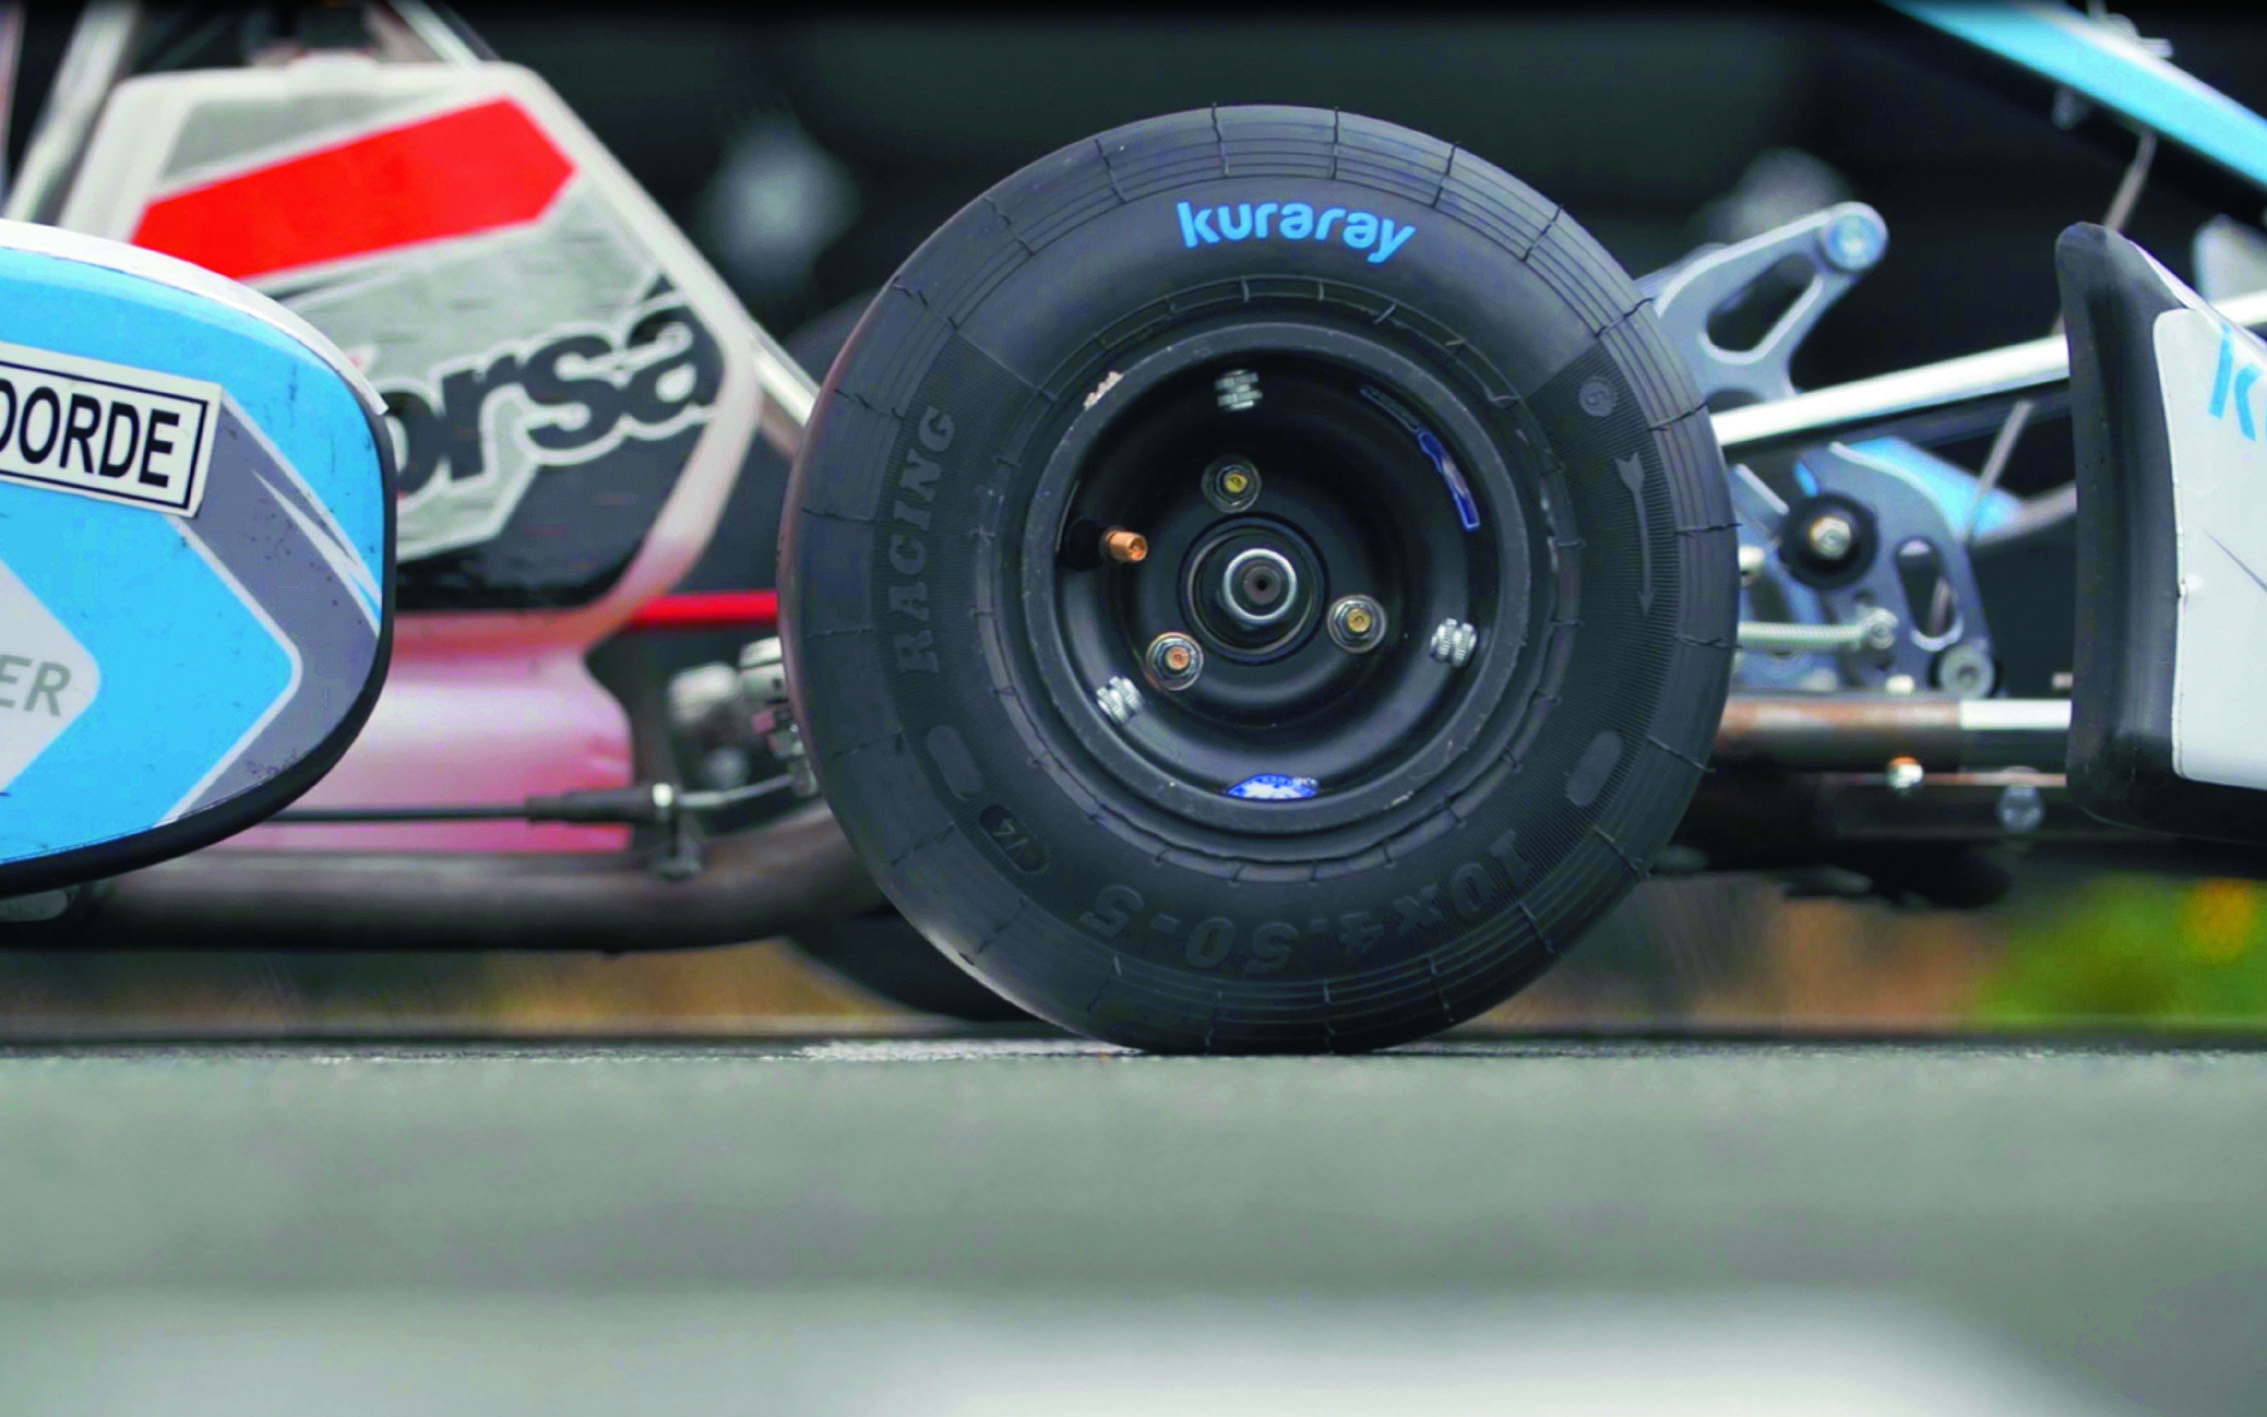 Liquid Rubber ensures tires have the best grip and a longer service life (Source: Kuraray)